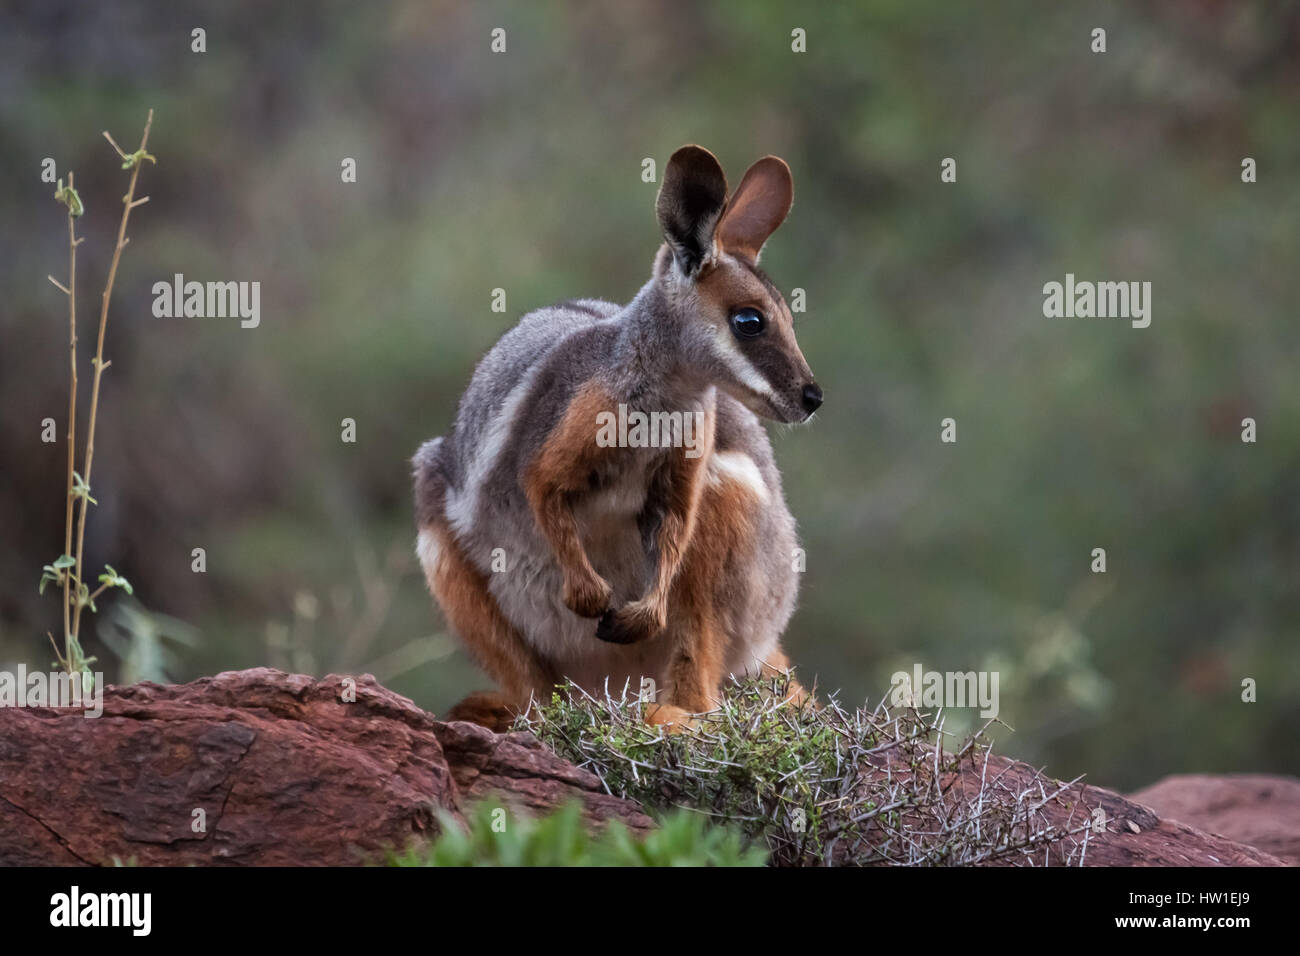 Yellow-footed Rock-wallaby (Petrogale xanthopus) - Stock Image